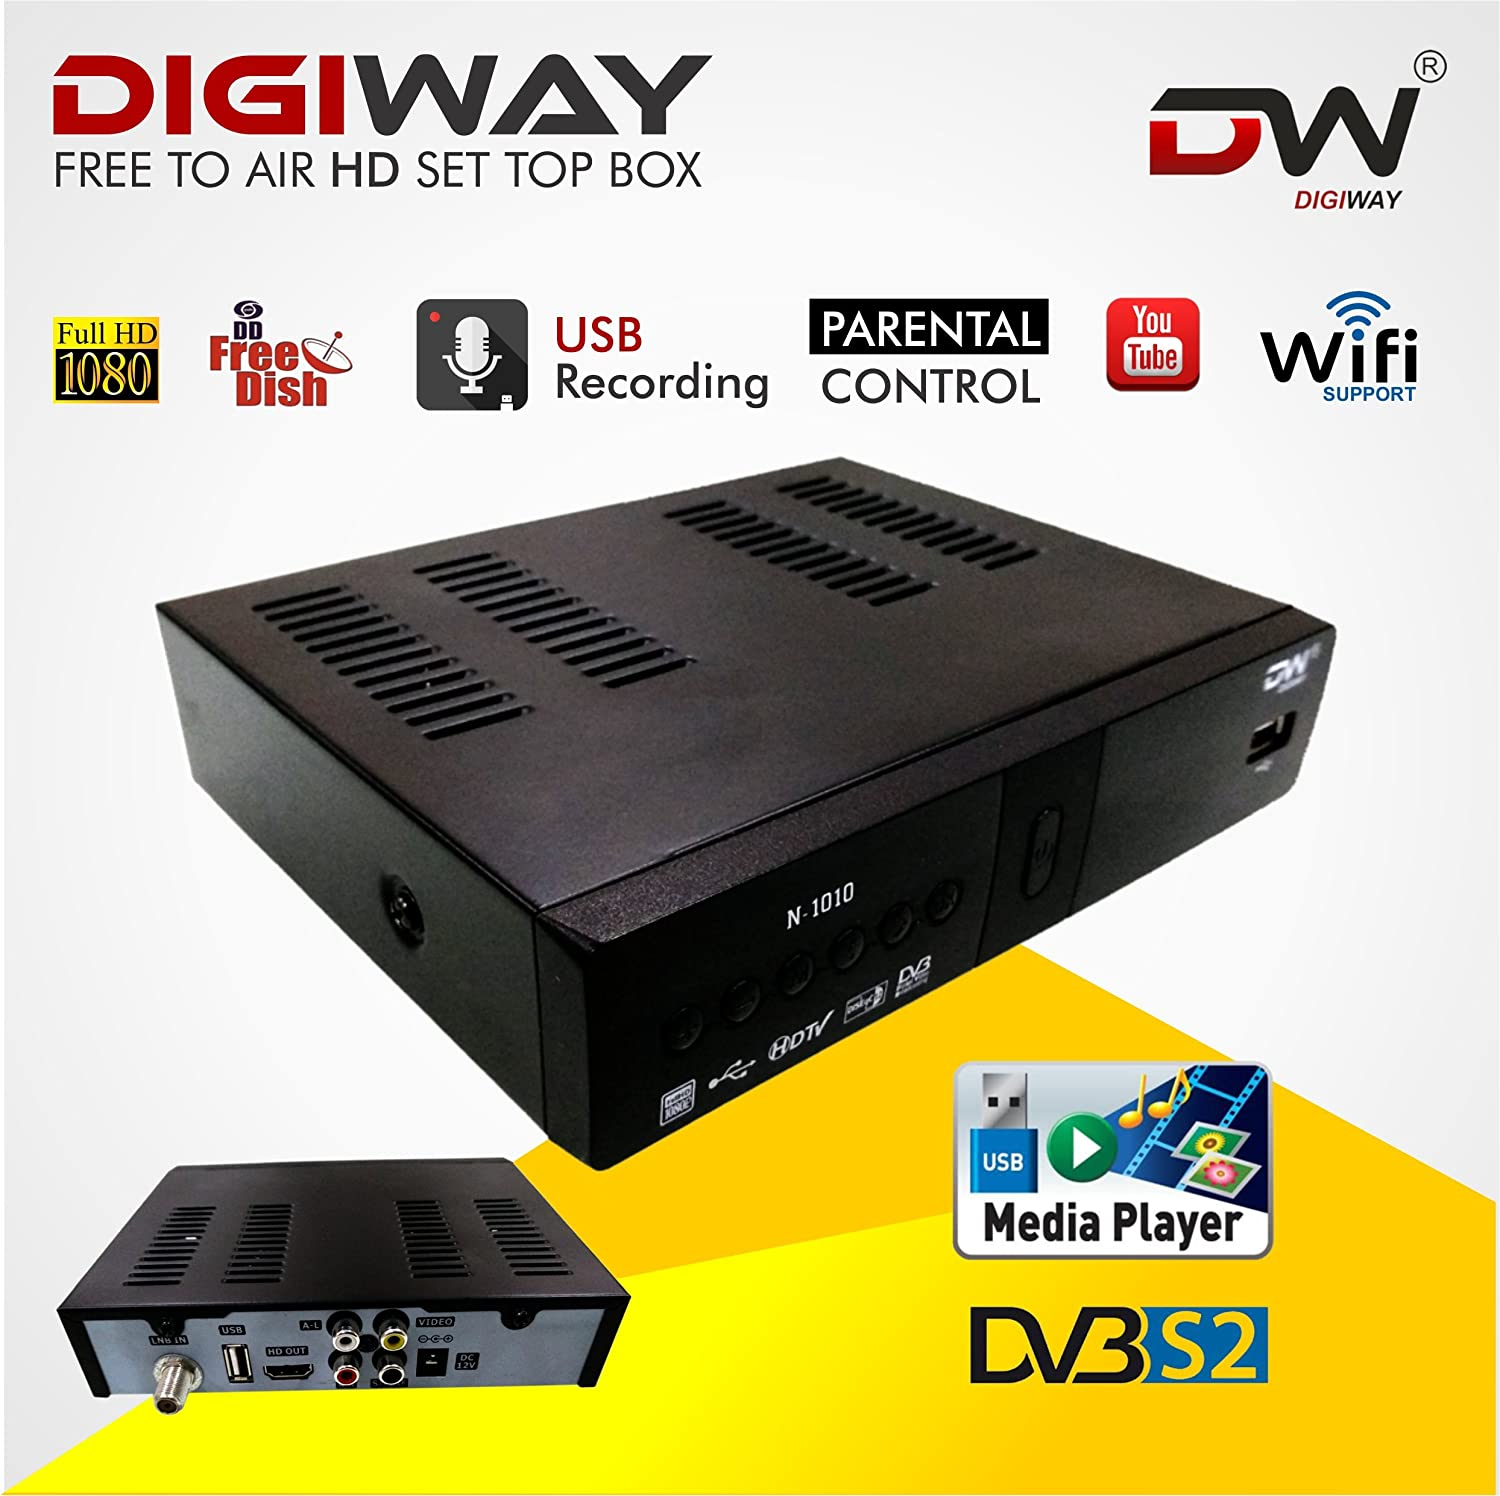 Digiway Free To Air Dd Direct Dth Set Top Box Amazon Electronics